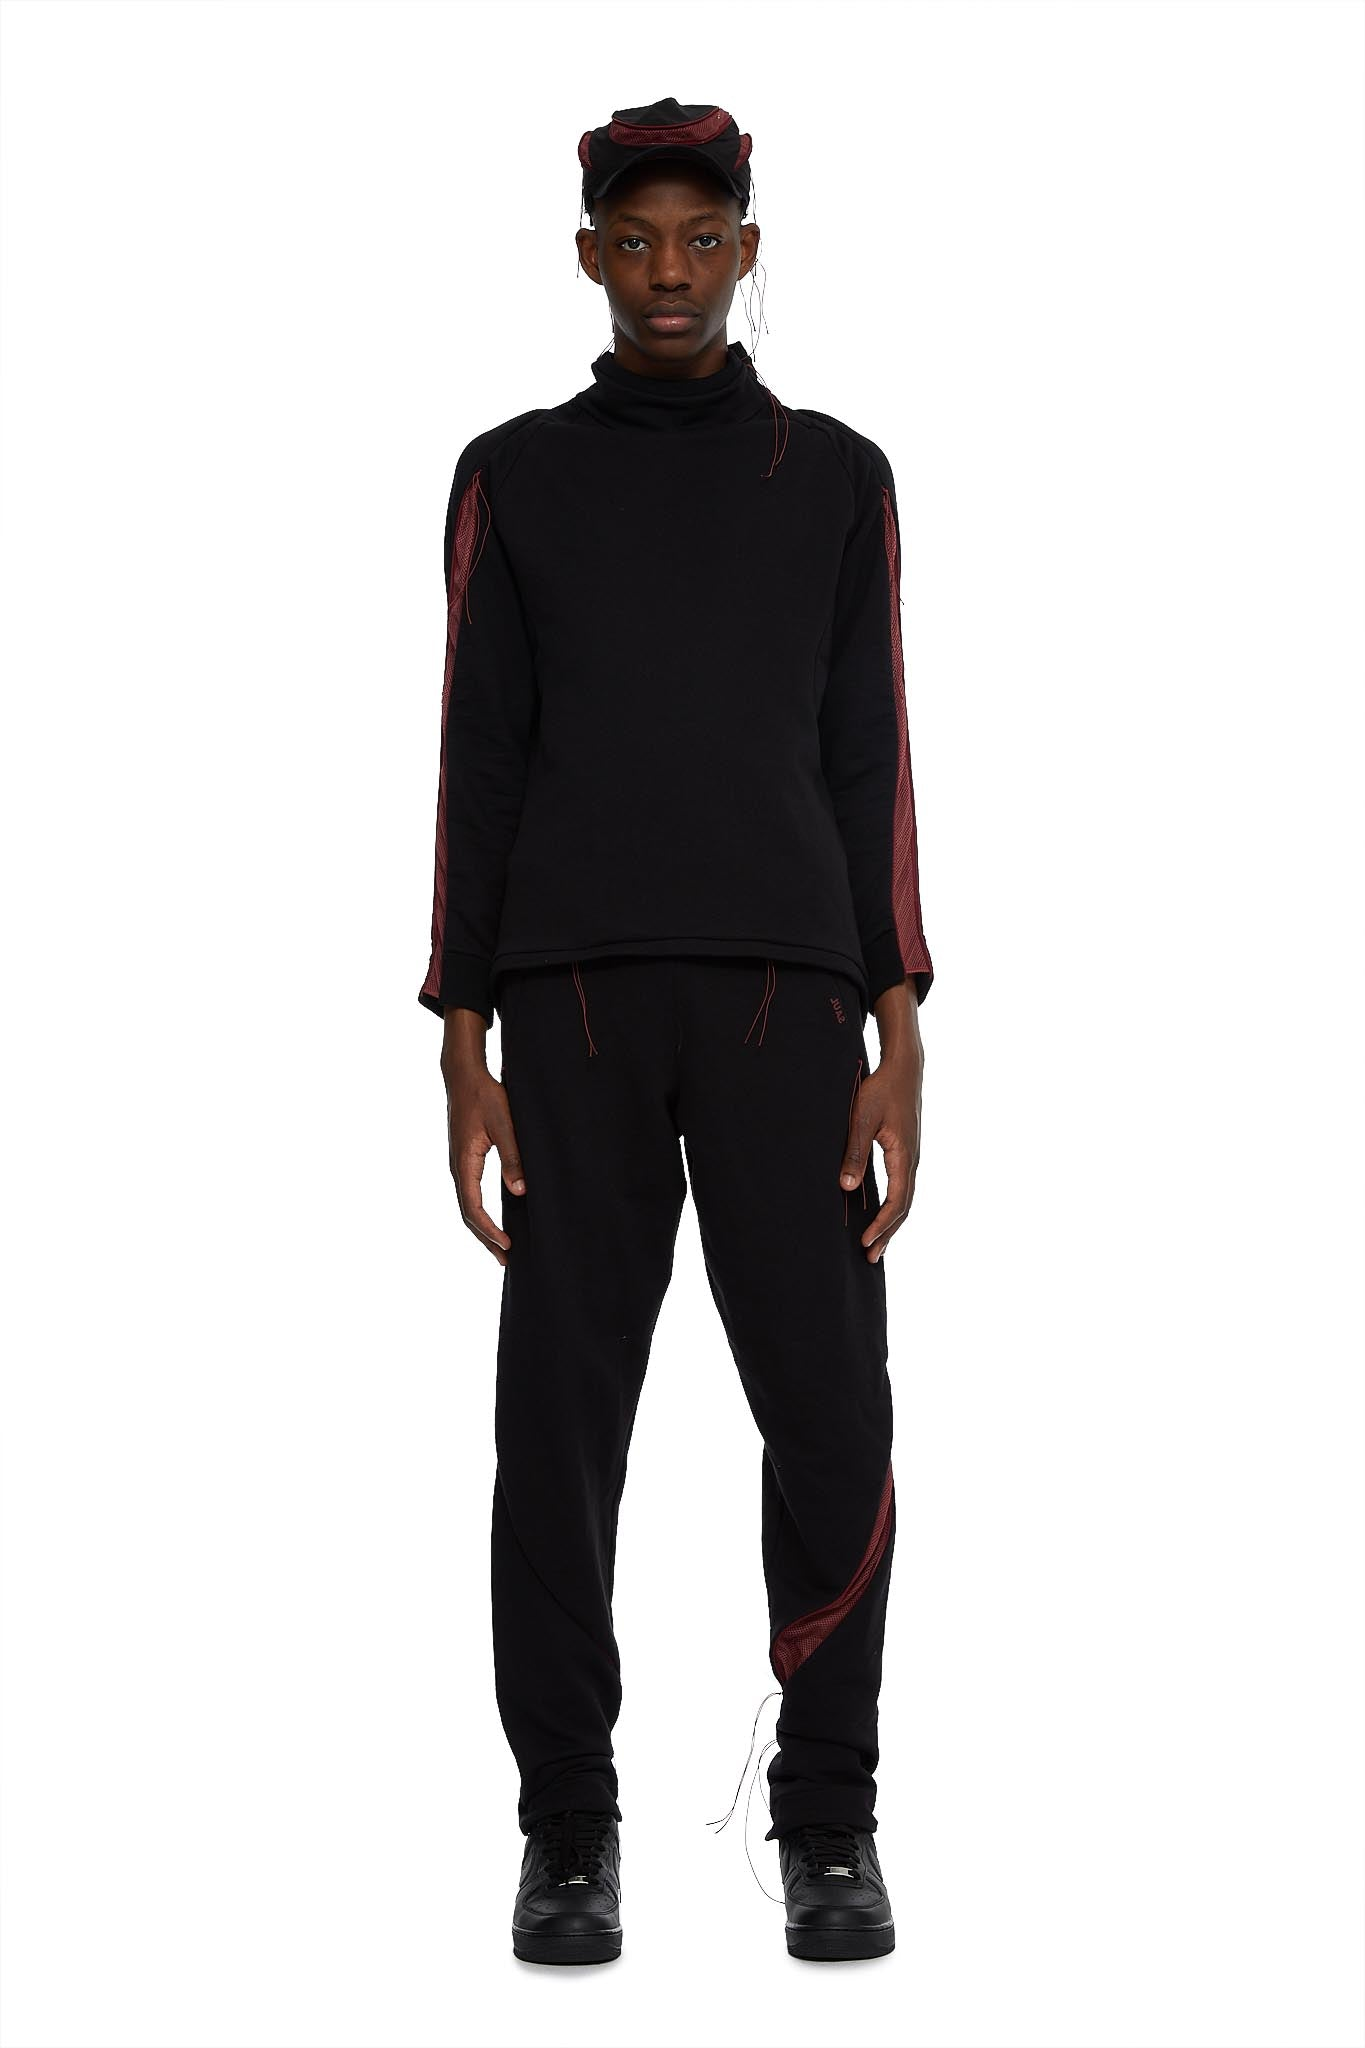 SAUL NASH, zip through pant, BLACK / RED, AW20SN38, TROUSERS, AW20, COTTON, MENS, TROUSERS